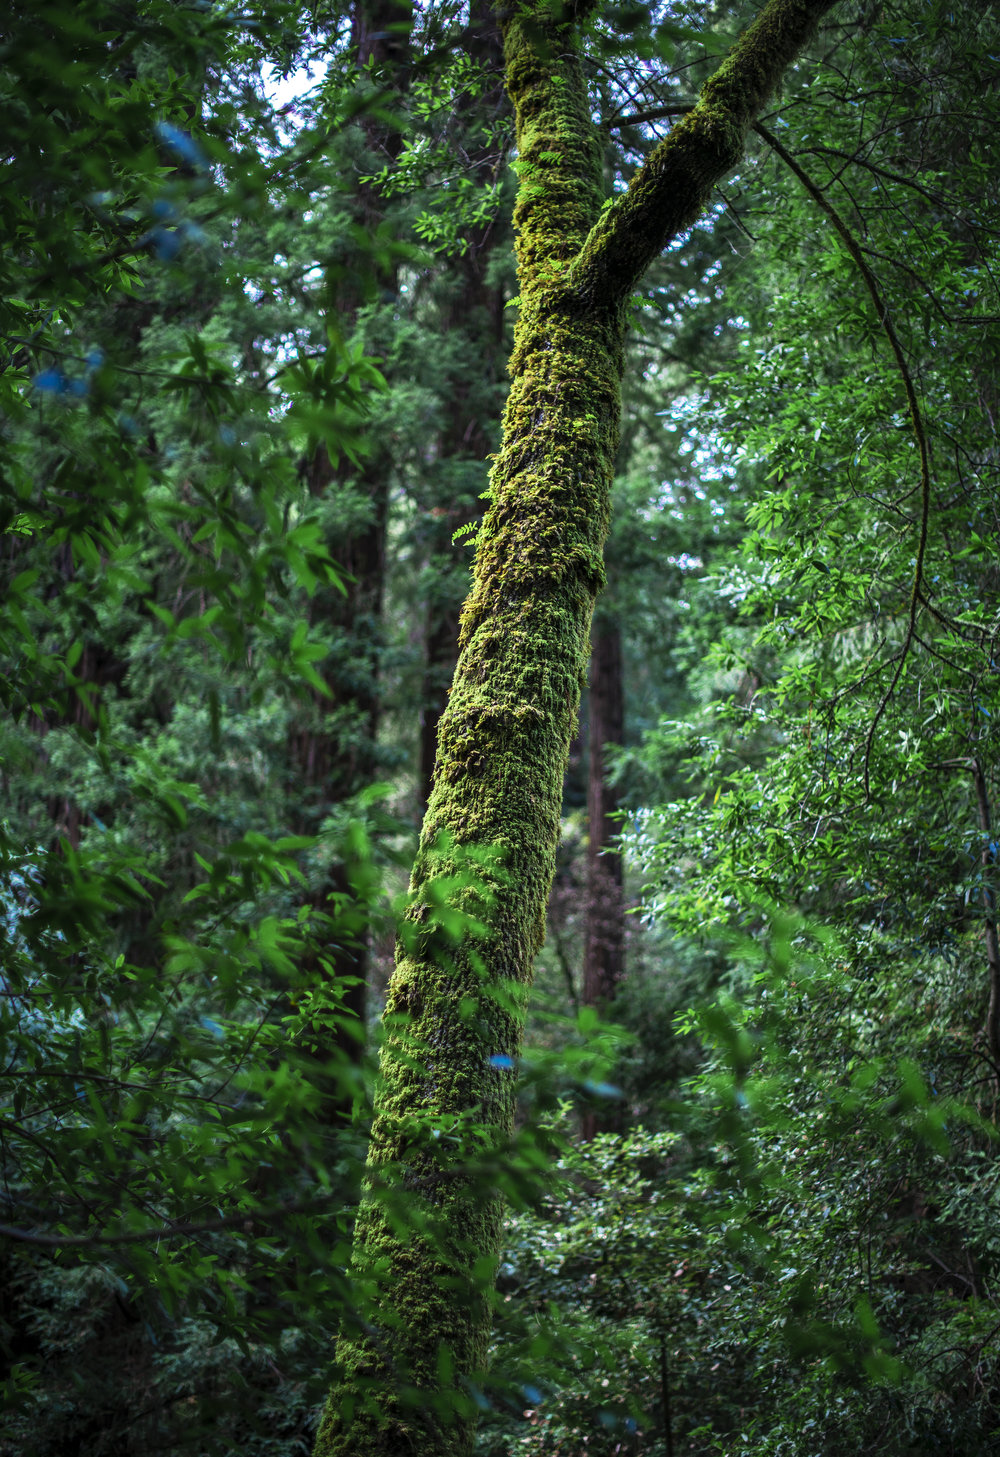 Something about the dense green and yellows from the Redwood Forest that will never get old. This place is one of my favorites and I cannot wait to go back again.